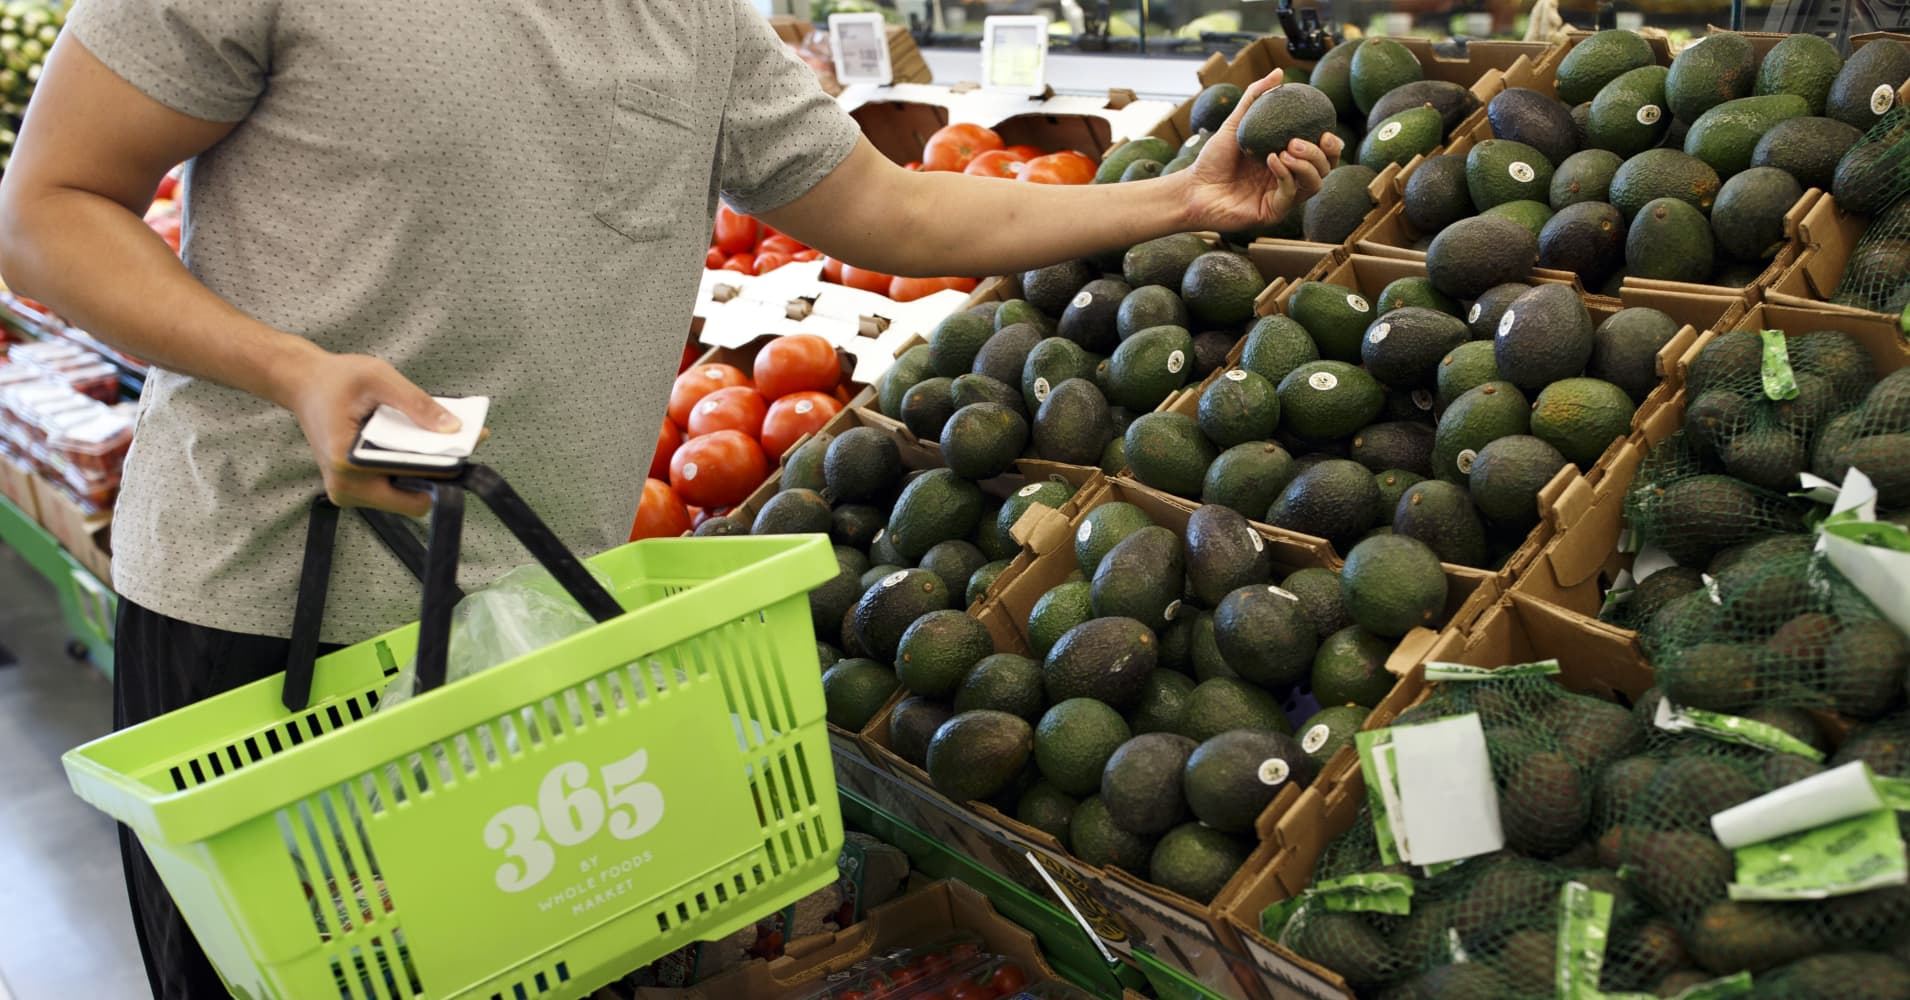 A Customer Browses Avocados At Whole Foods Market 365 Location In Santa Monica California